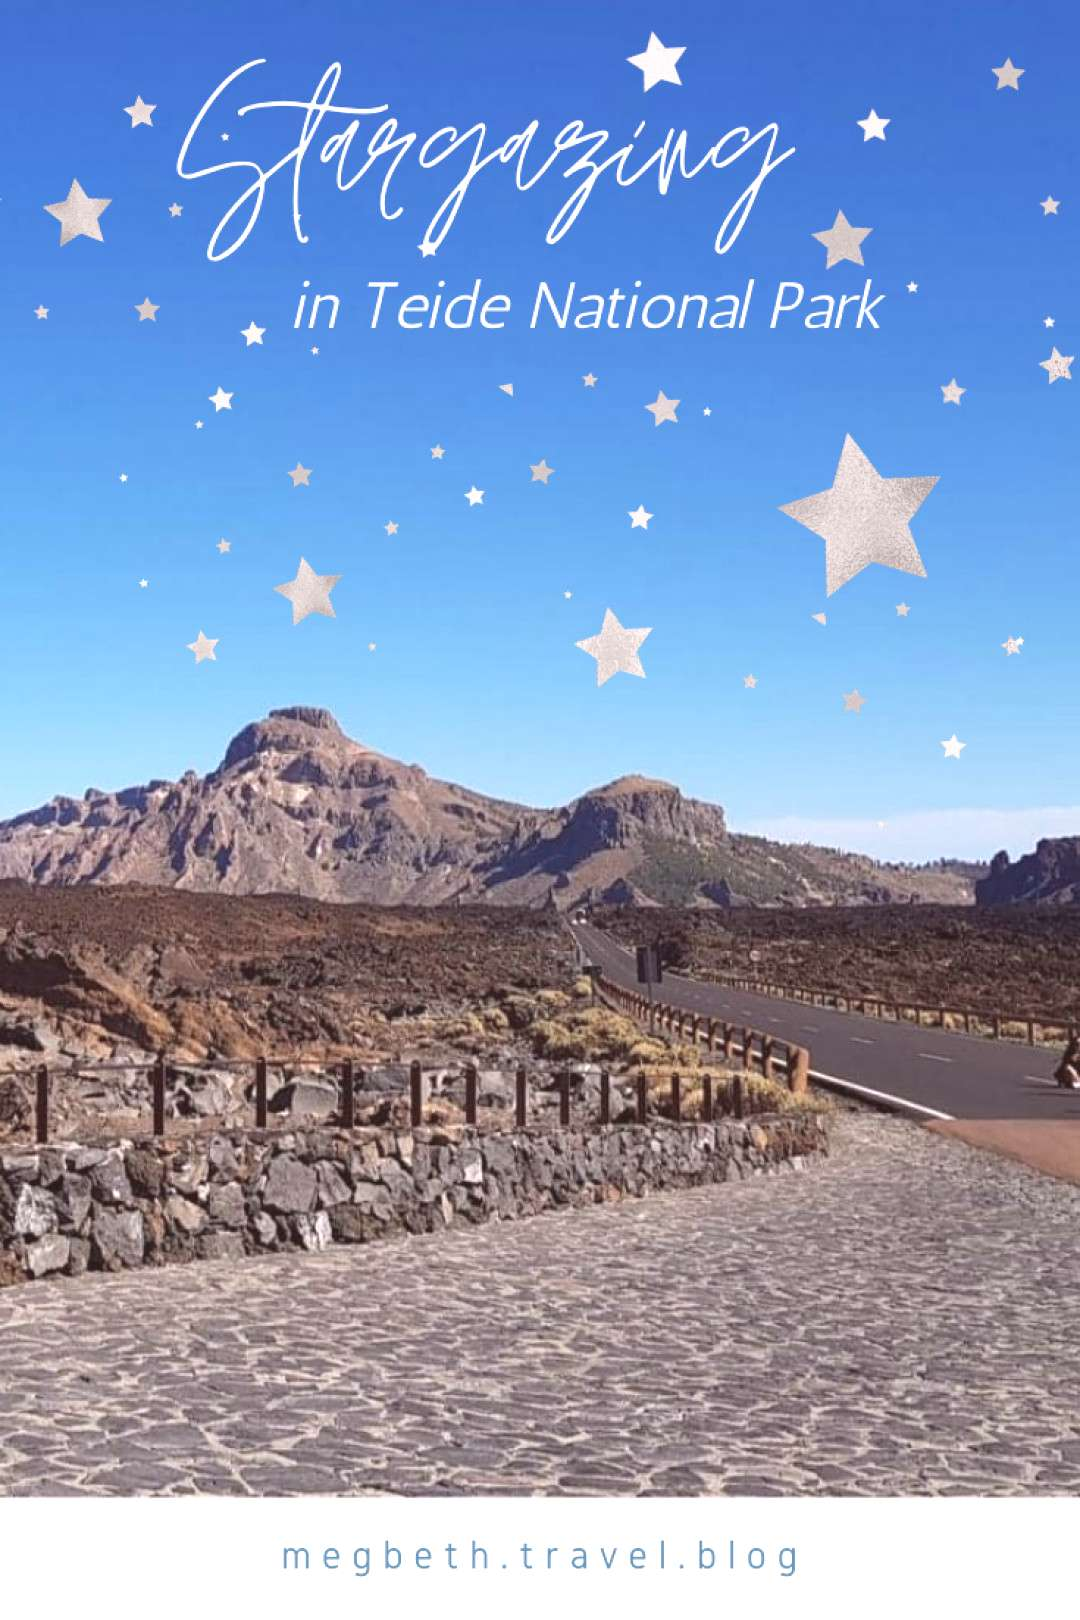 Stargazing in Teide National Park, Tenerife Join us as we recount our trip to Teide National Park,